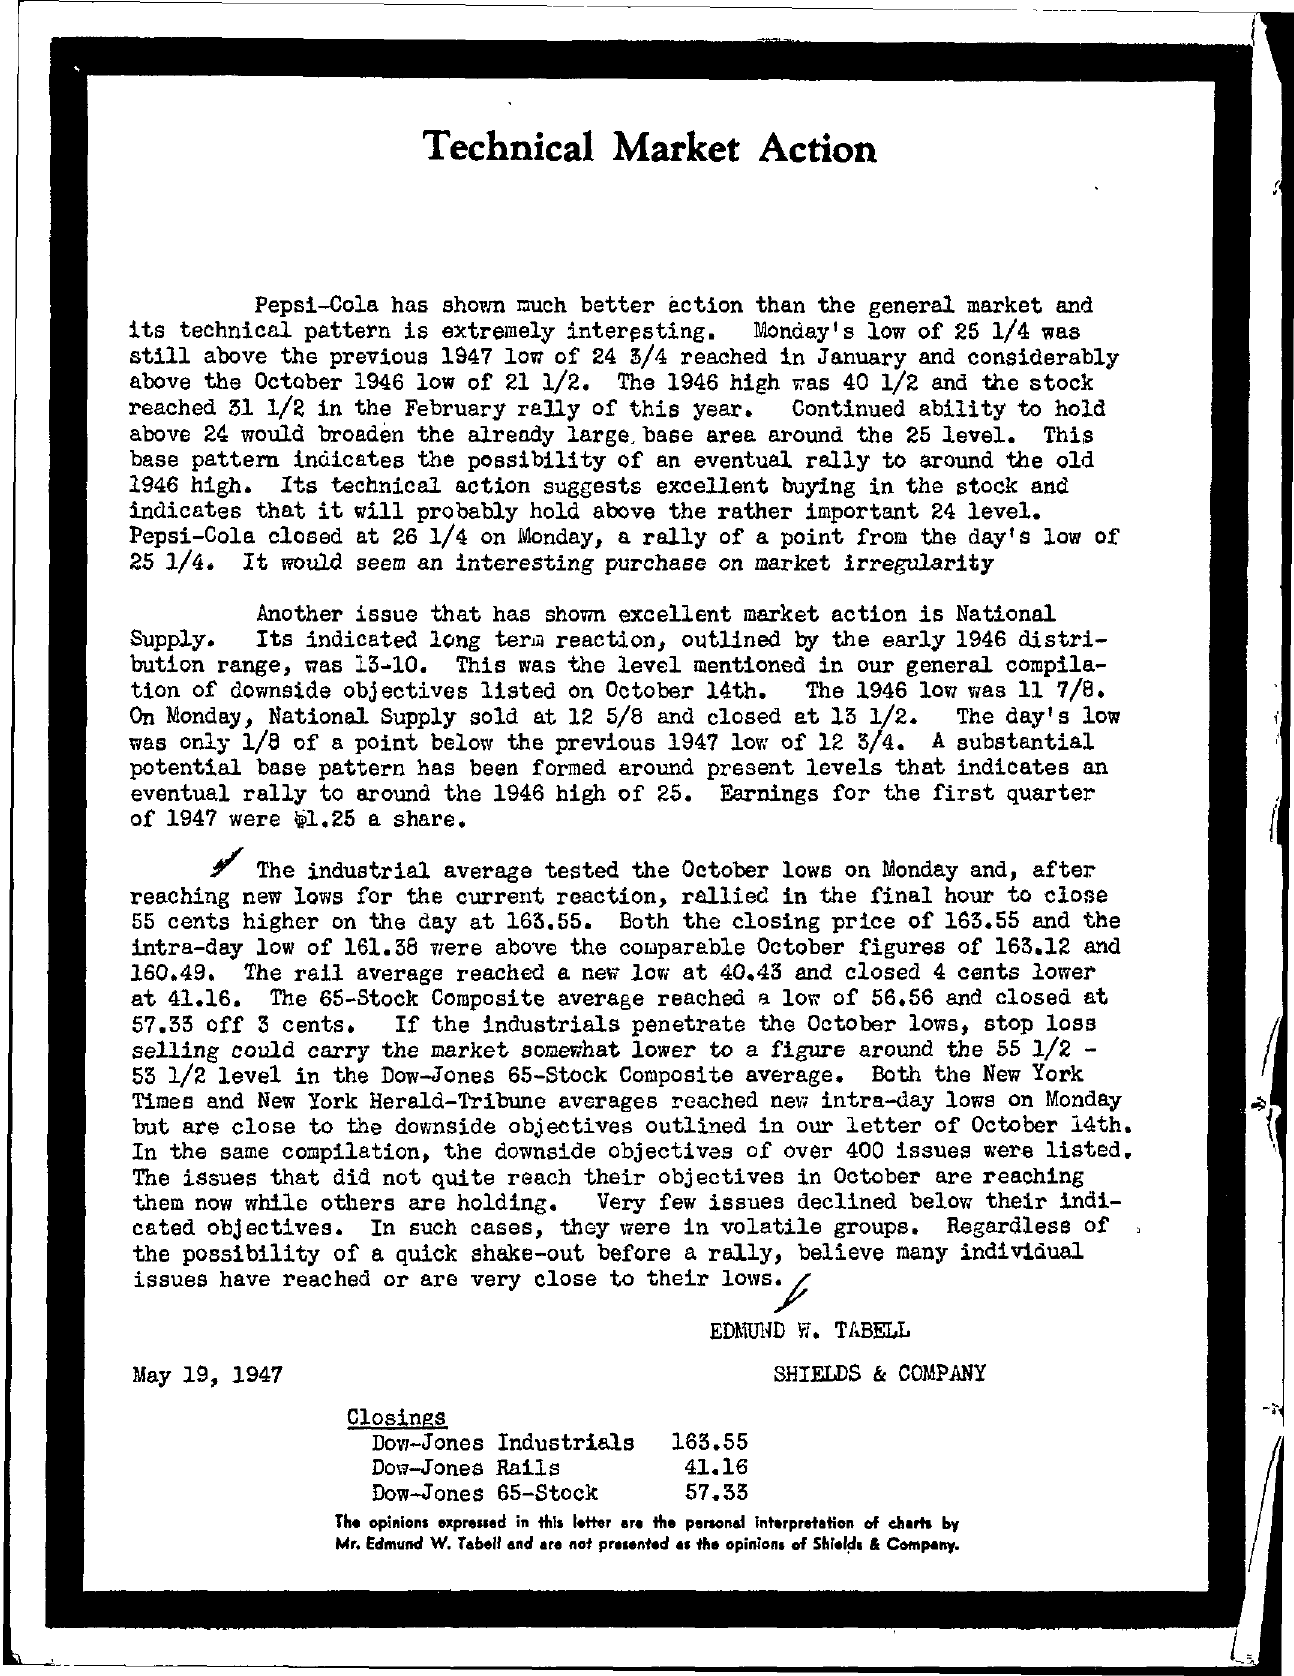 Tabell's Market Letter - May 19, 1947